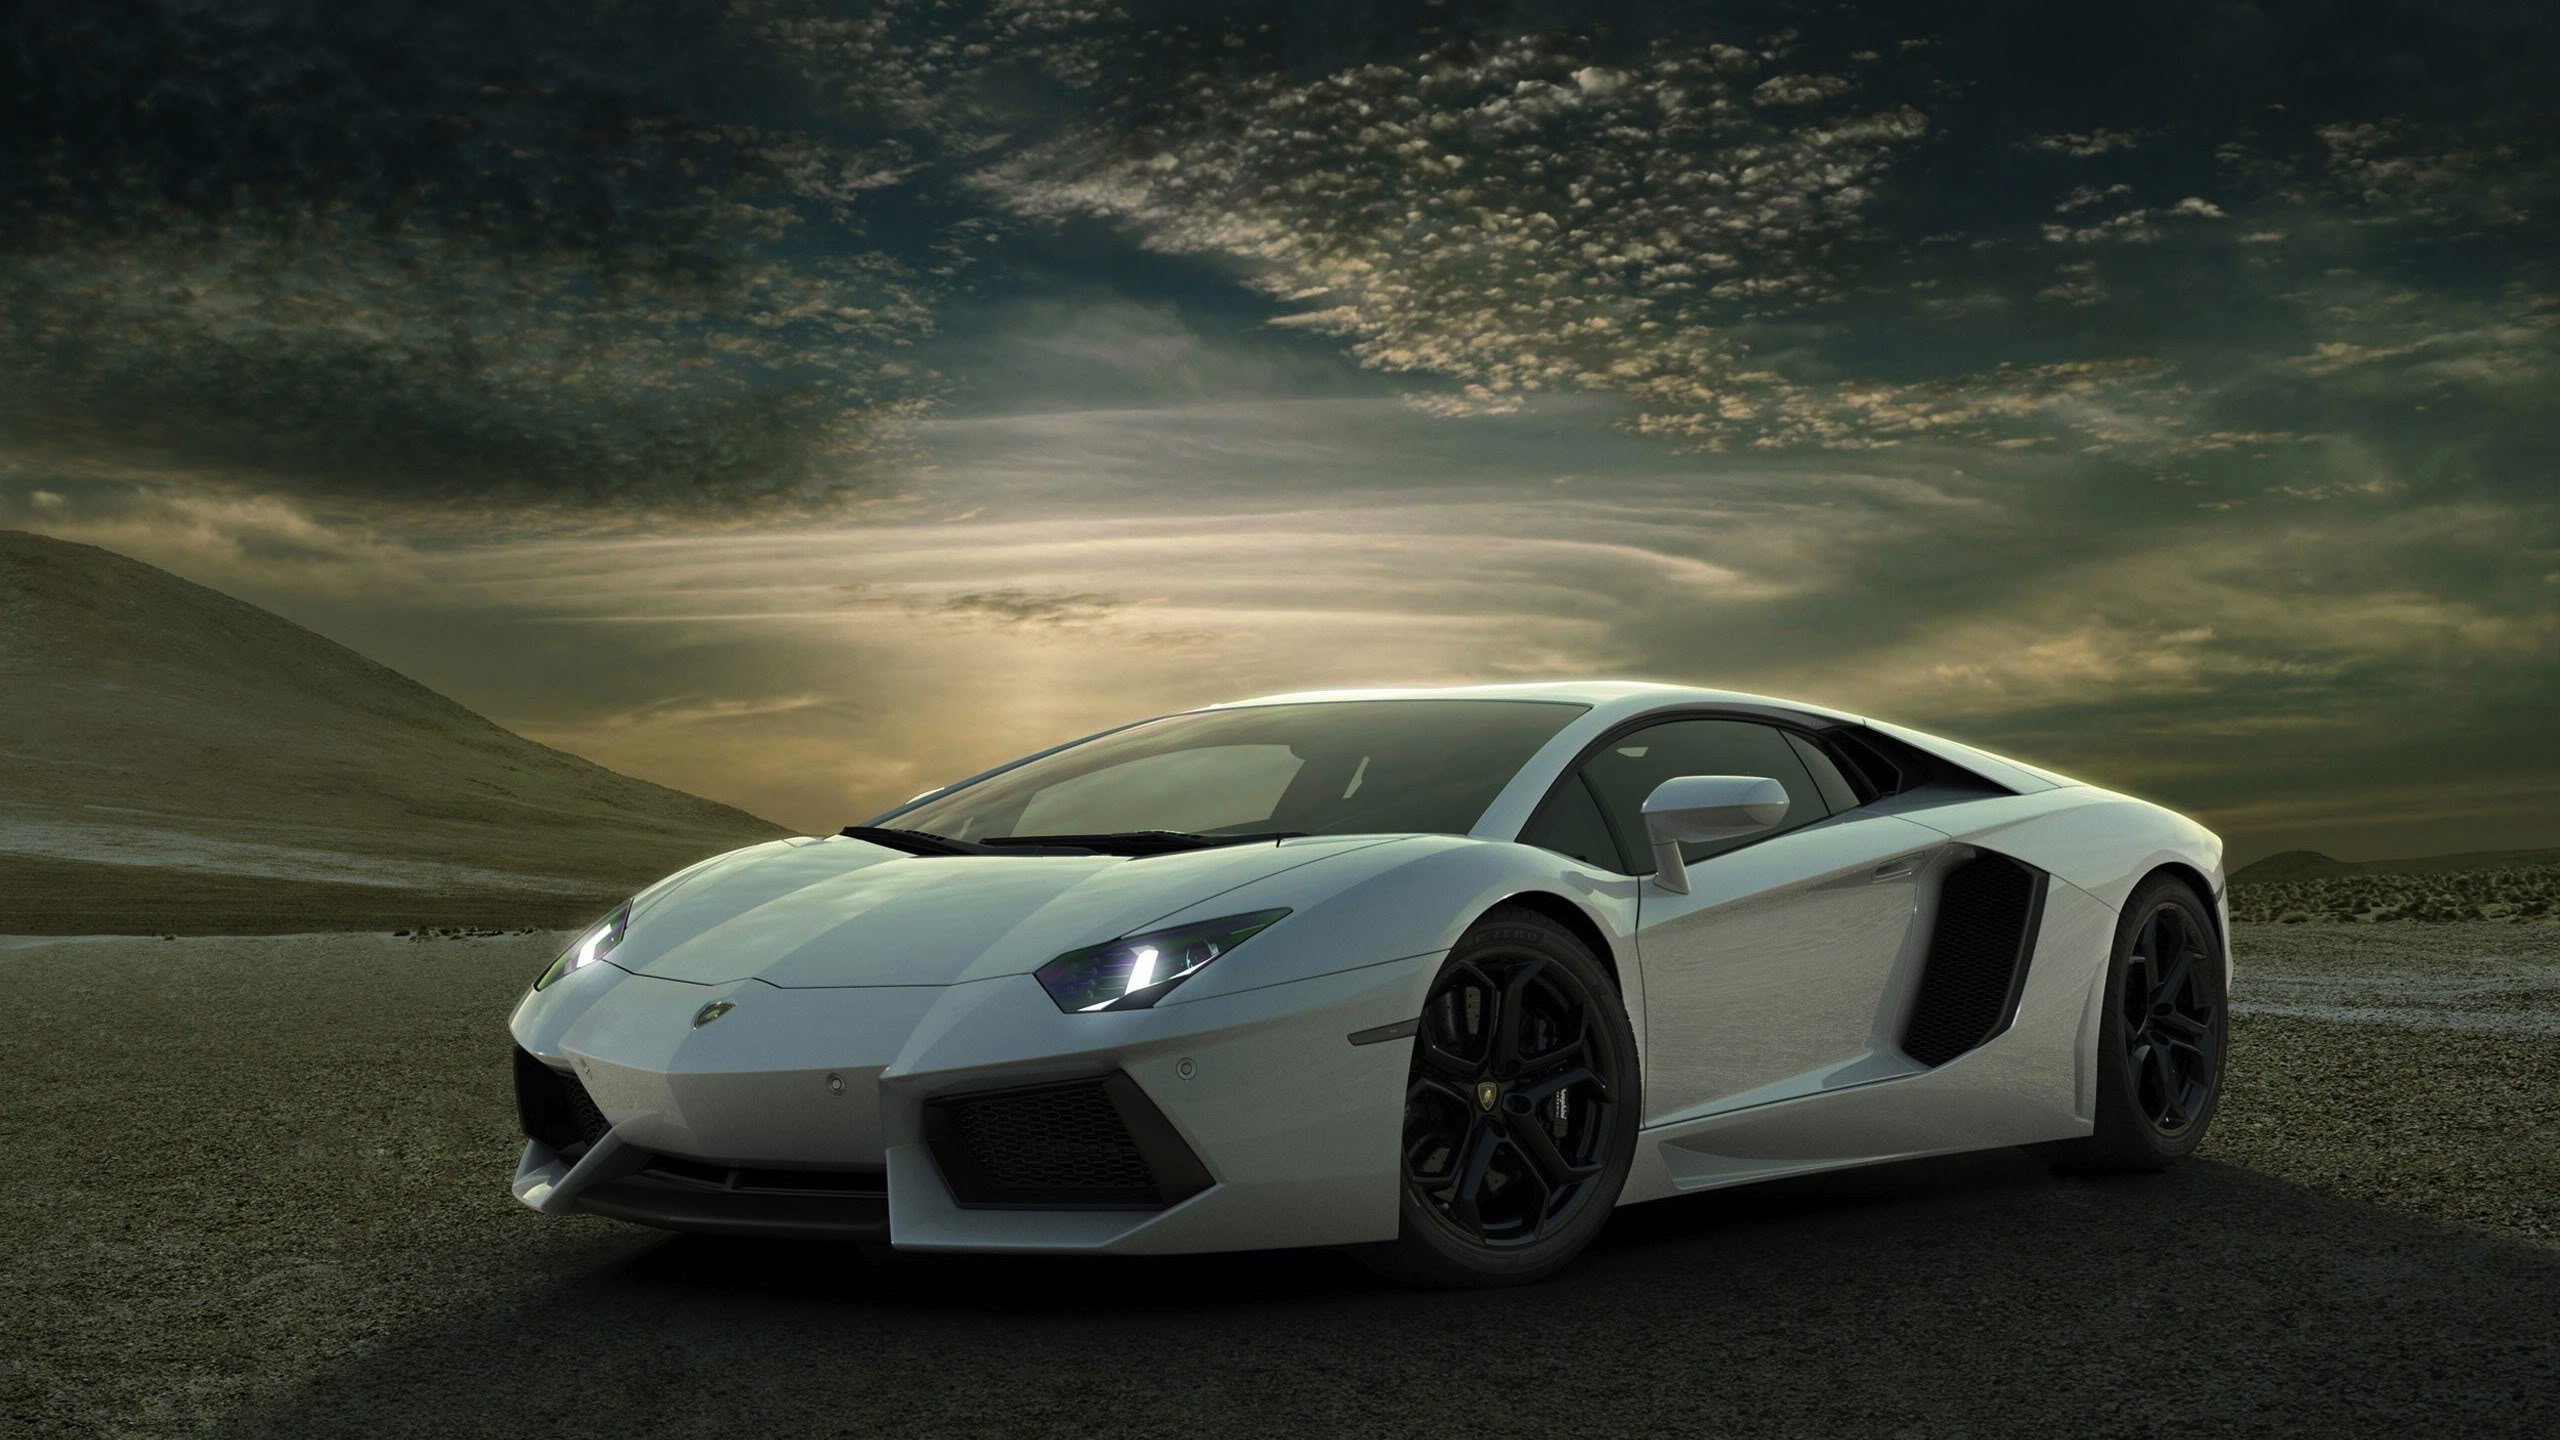 White Lamborghini Background